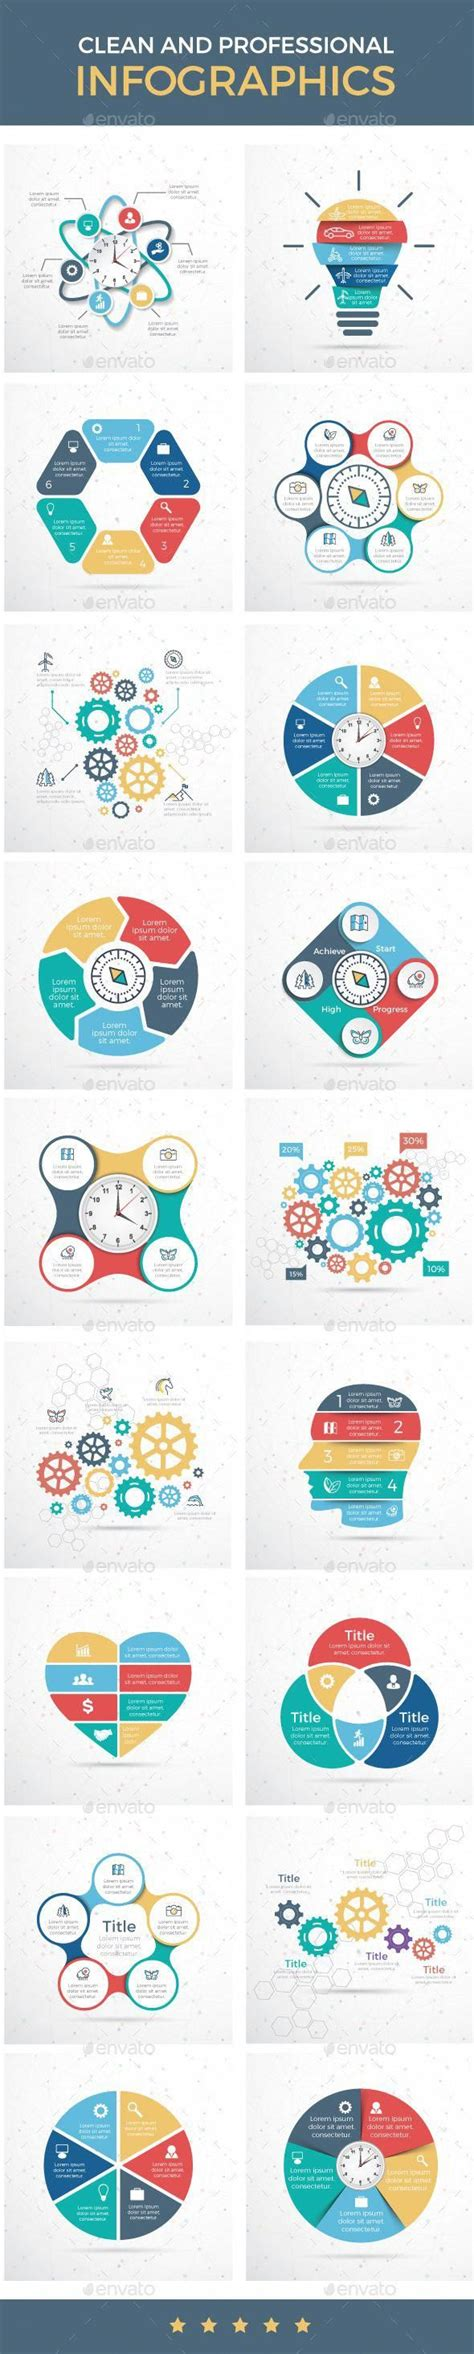 Infographics Book #InfographicsGuide id:2000982333 #